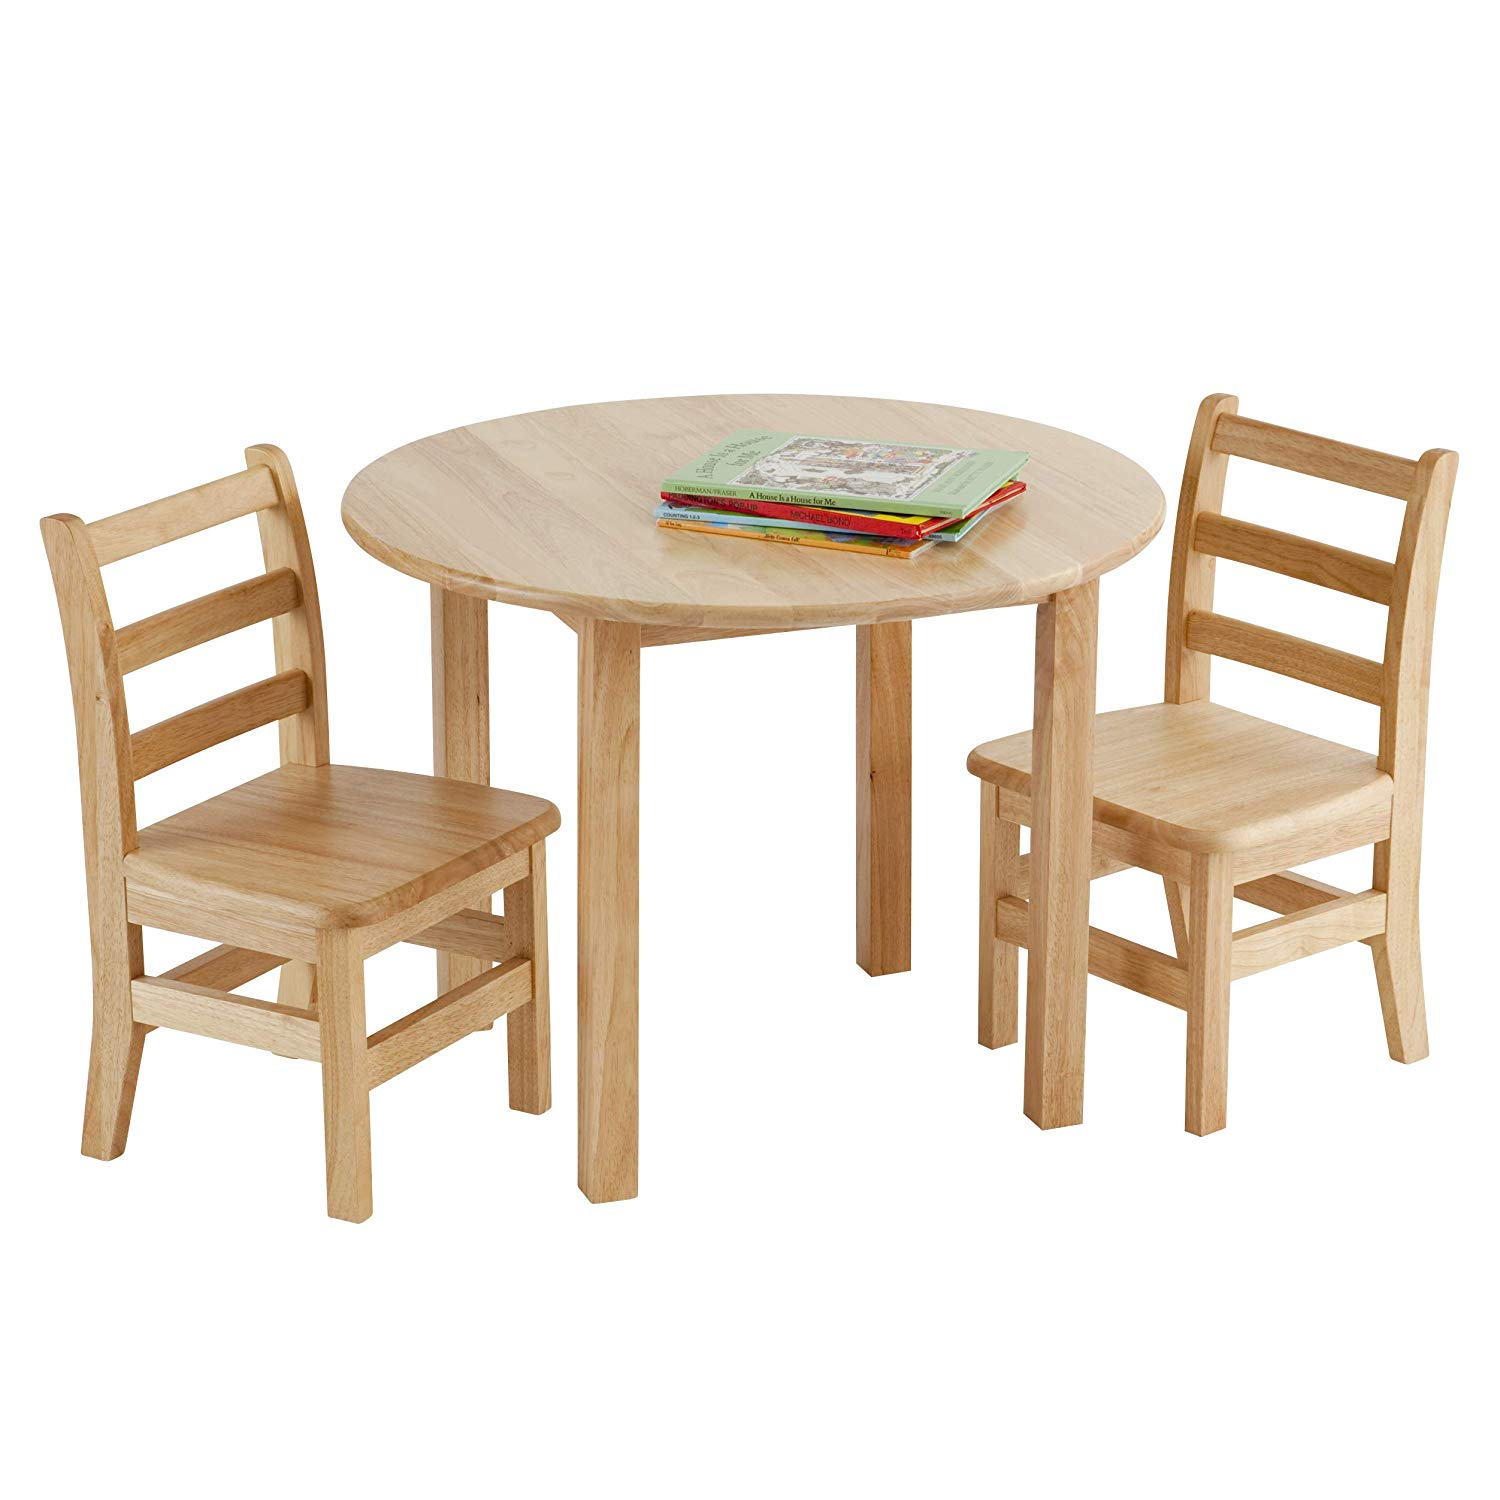 Top 5 Toddler Table and Chairs Australia 1